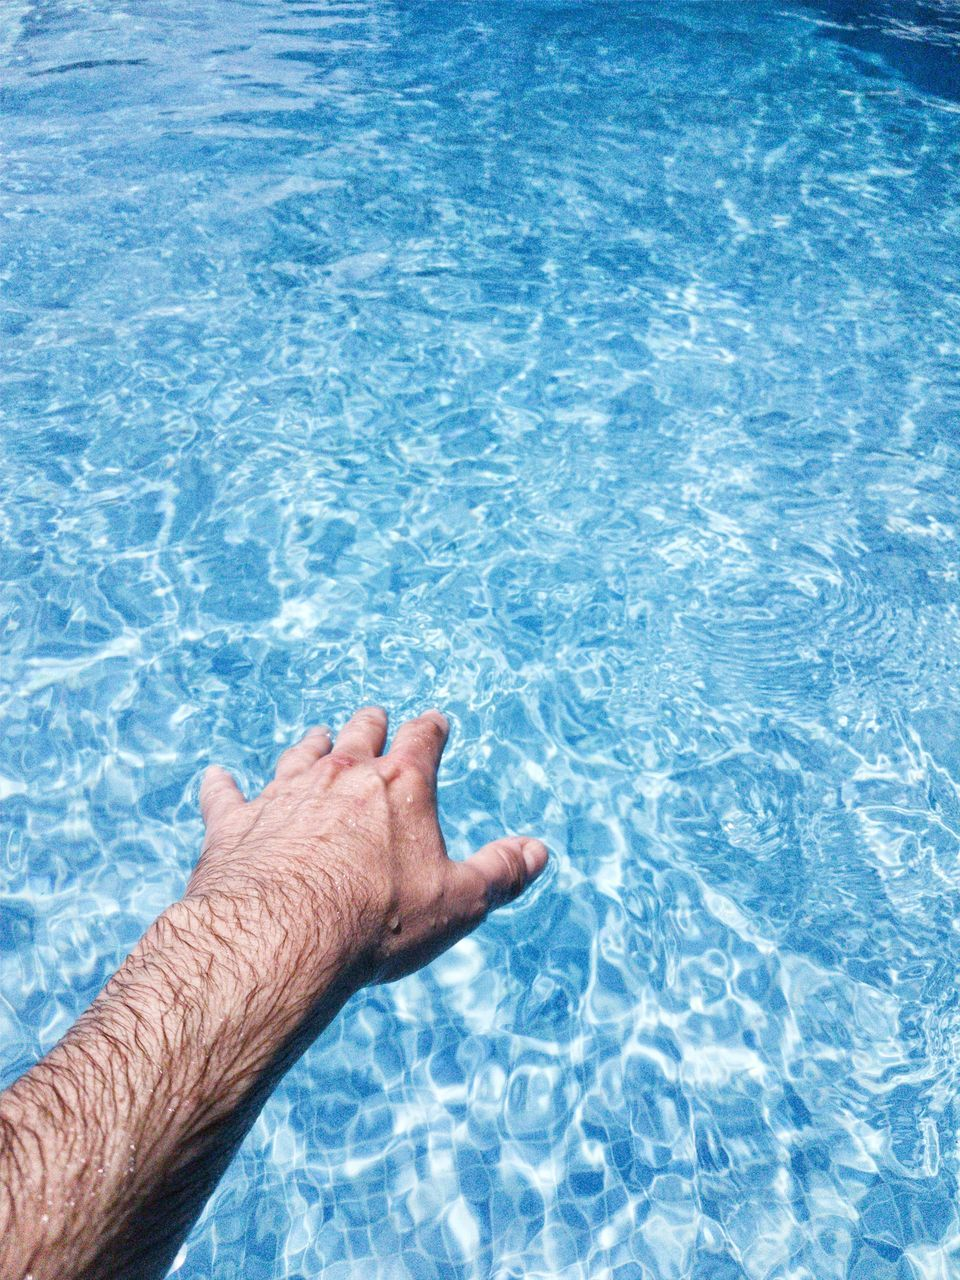 swimming pool, water, human body part, one person, blue, rippled, summer, outdoors, day, one man only, human hand, people, low section, real people, close-up, refraction, adult, adults only, only men